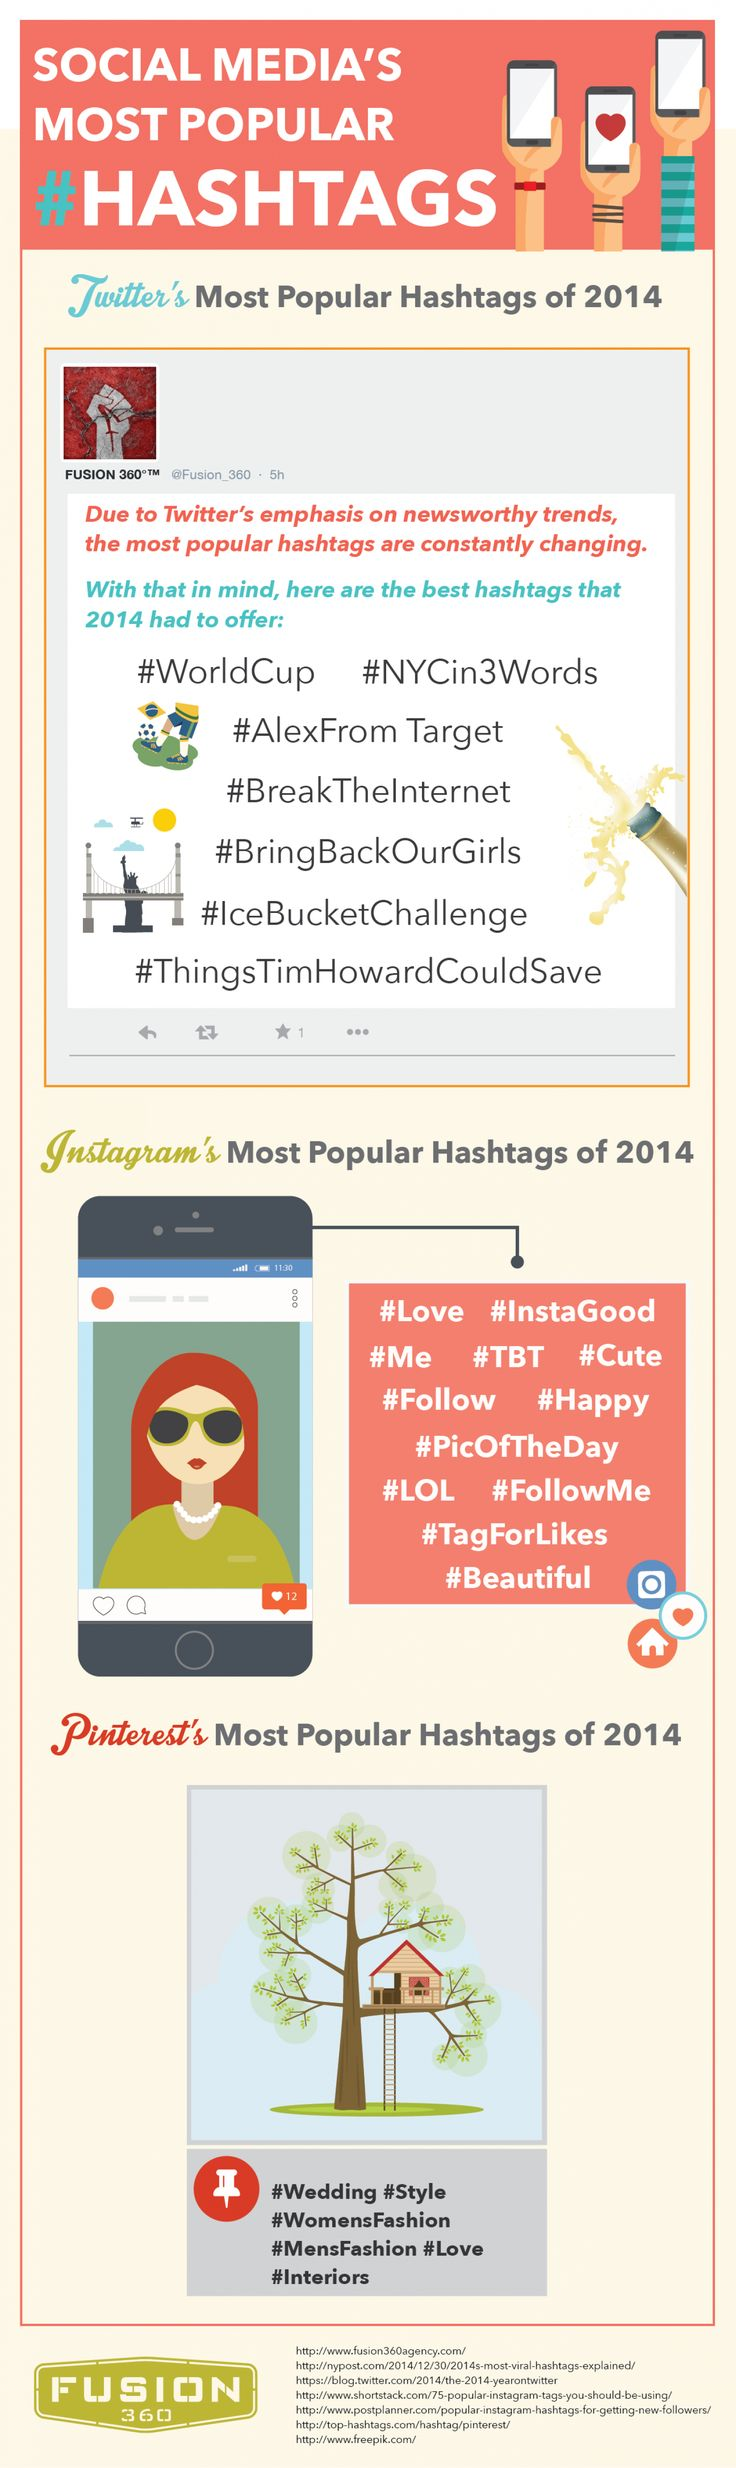 Social Media's Most Popular Hashtags Infographic